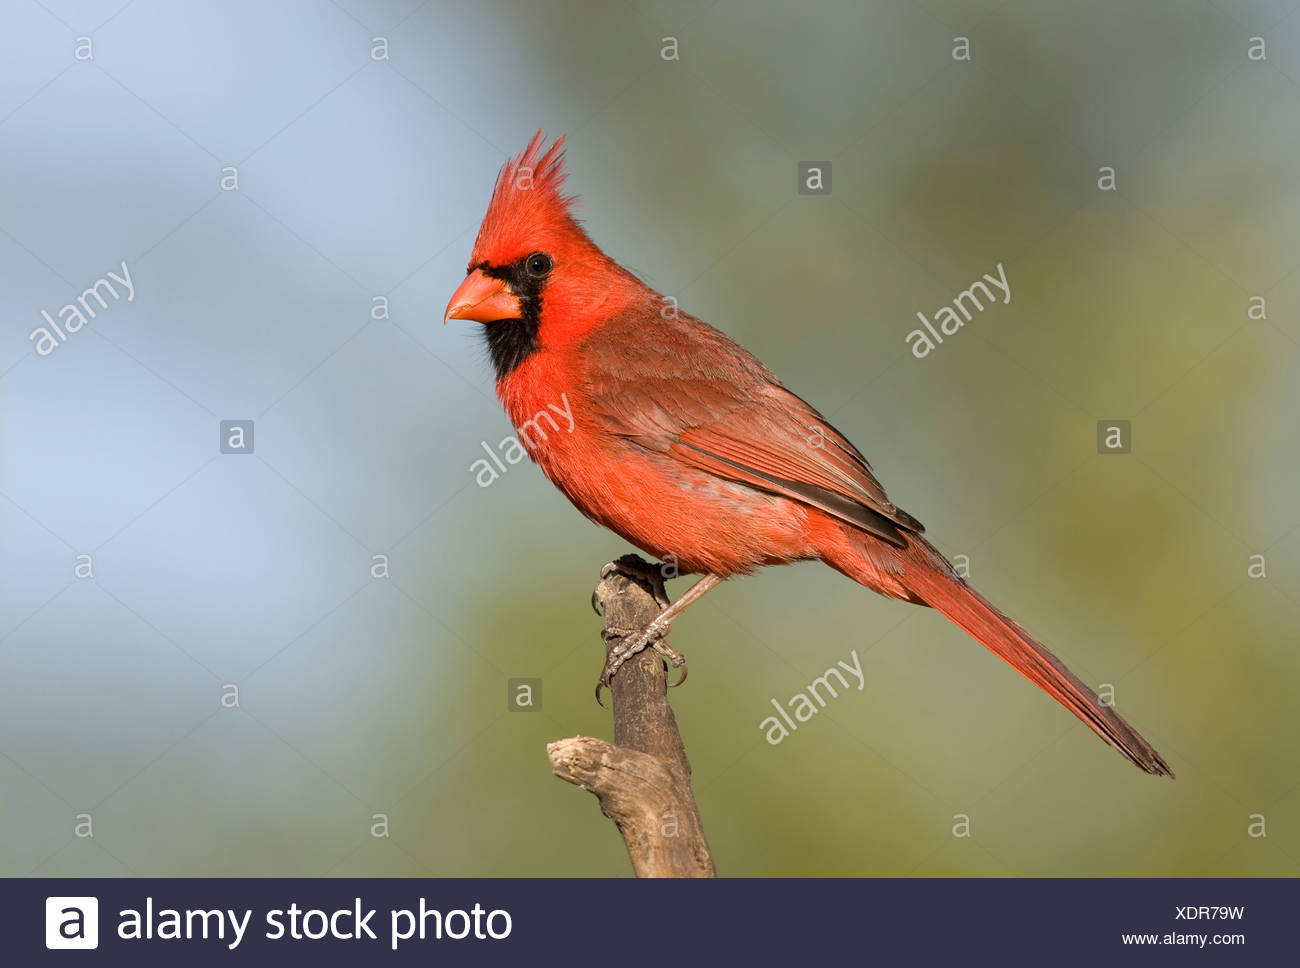 Male Northern cardinal (Cardinalis cardinalis) perching on a branch - Stock Image